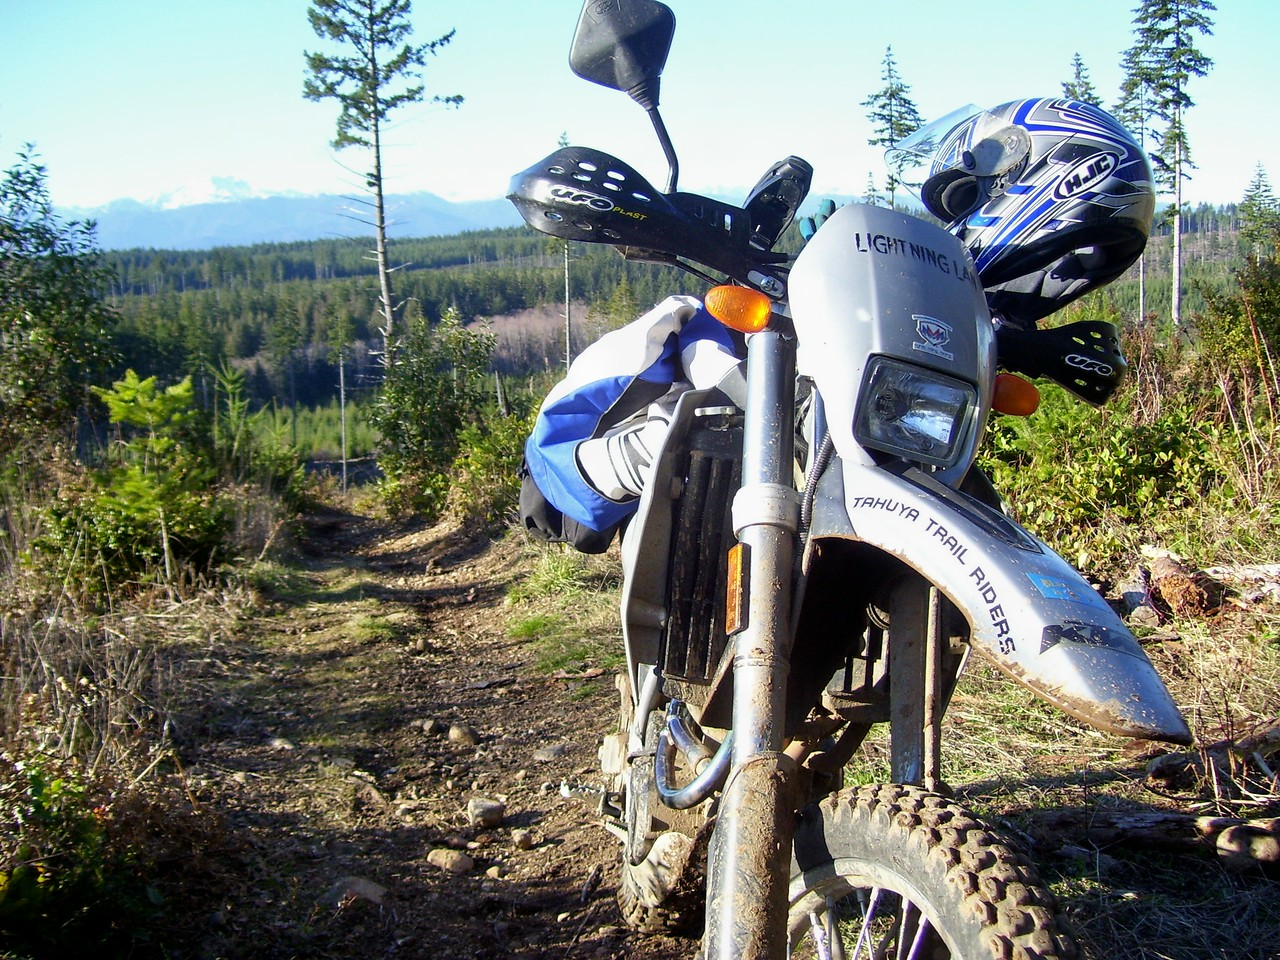 At the top of an old skid trail that connects to Raines Grade trail... Lan's KTM LC4